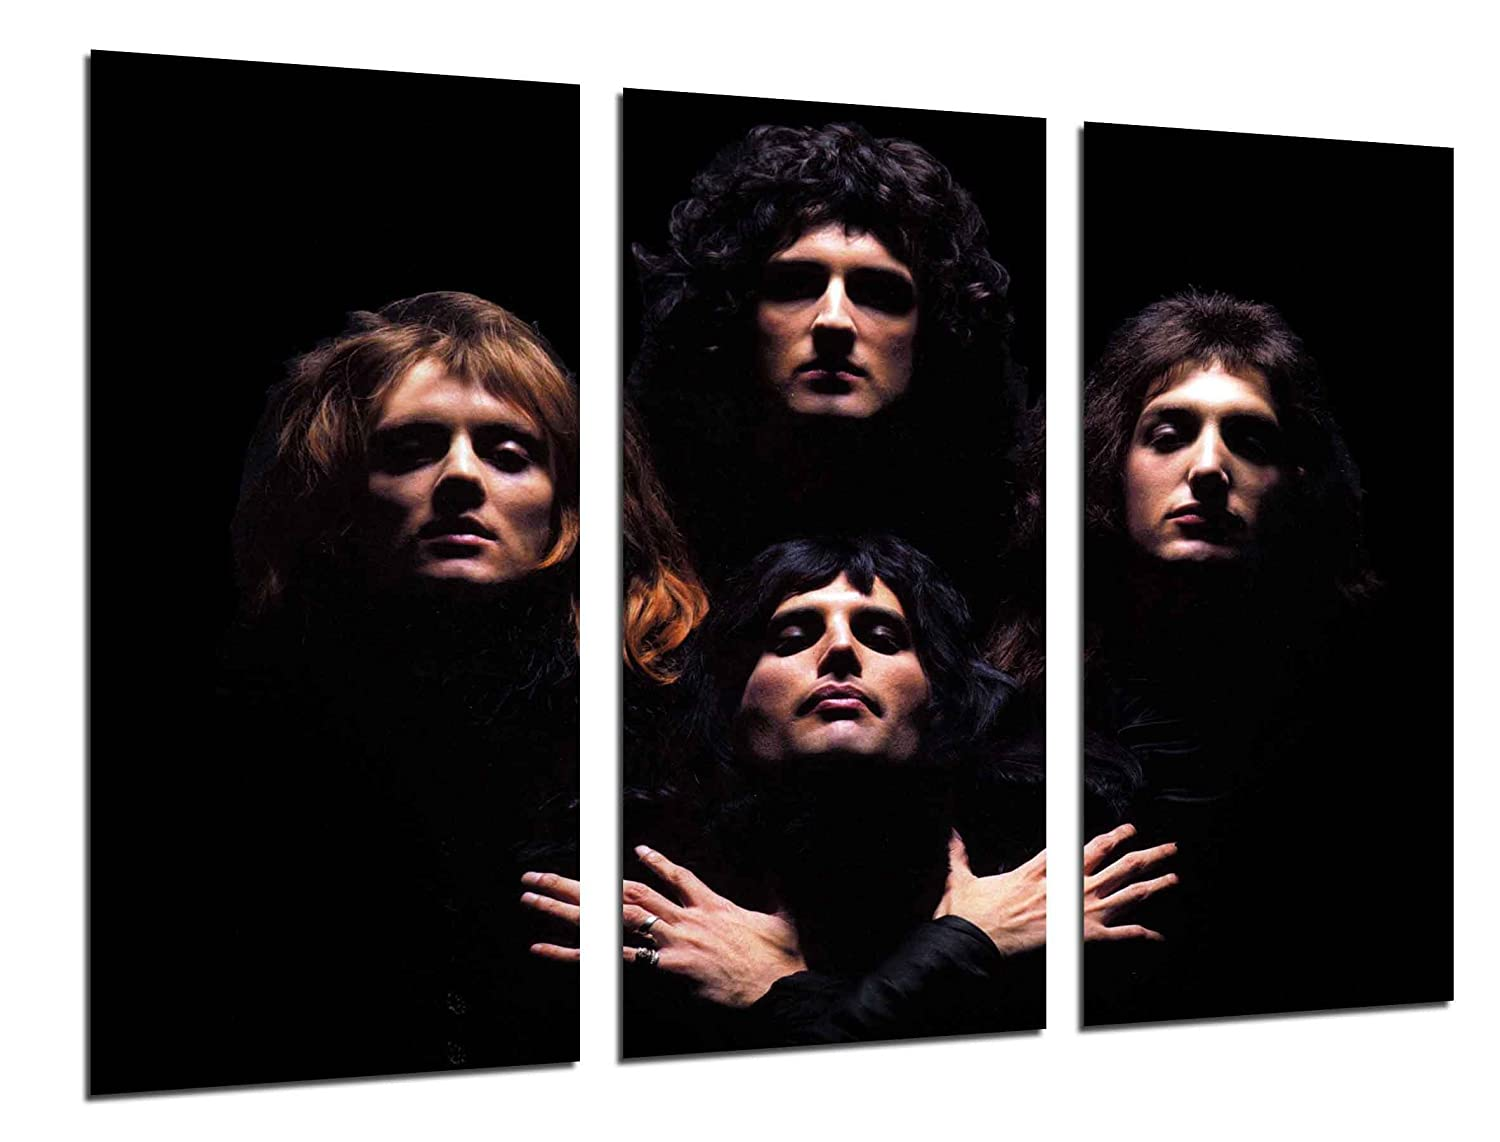 "MULTI Wood Printings Art Print Box Framed Picture Wall Hanging - Queen, Freddie Mercury, Brian May, Music Rock, Bohemian Rhapsody, (Total Size: 38,2"" x 24,4""), - Framed And Ready To Hang - ref. 26519 2"" x 24 4"") Cuadros Camara"